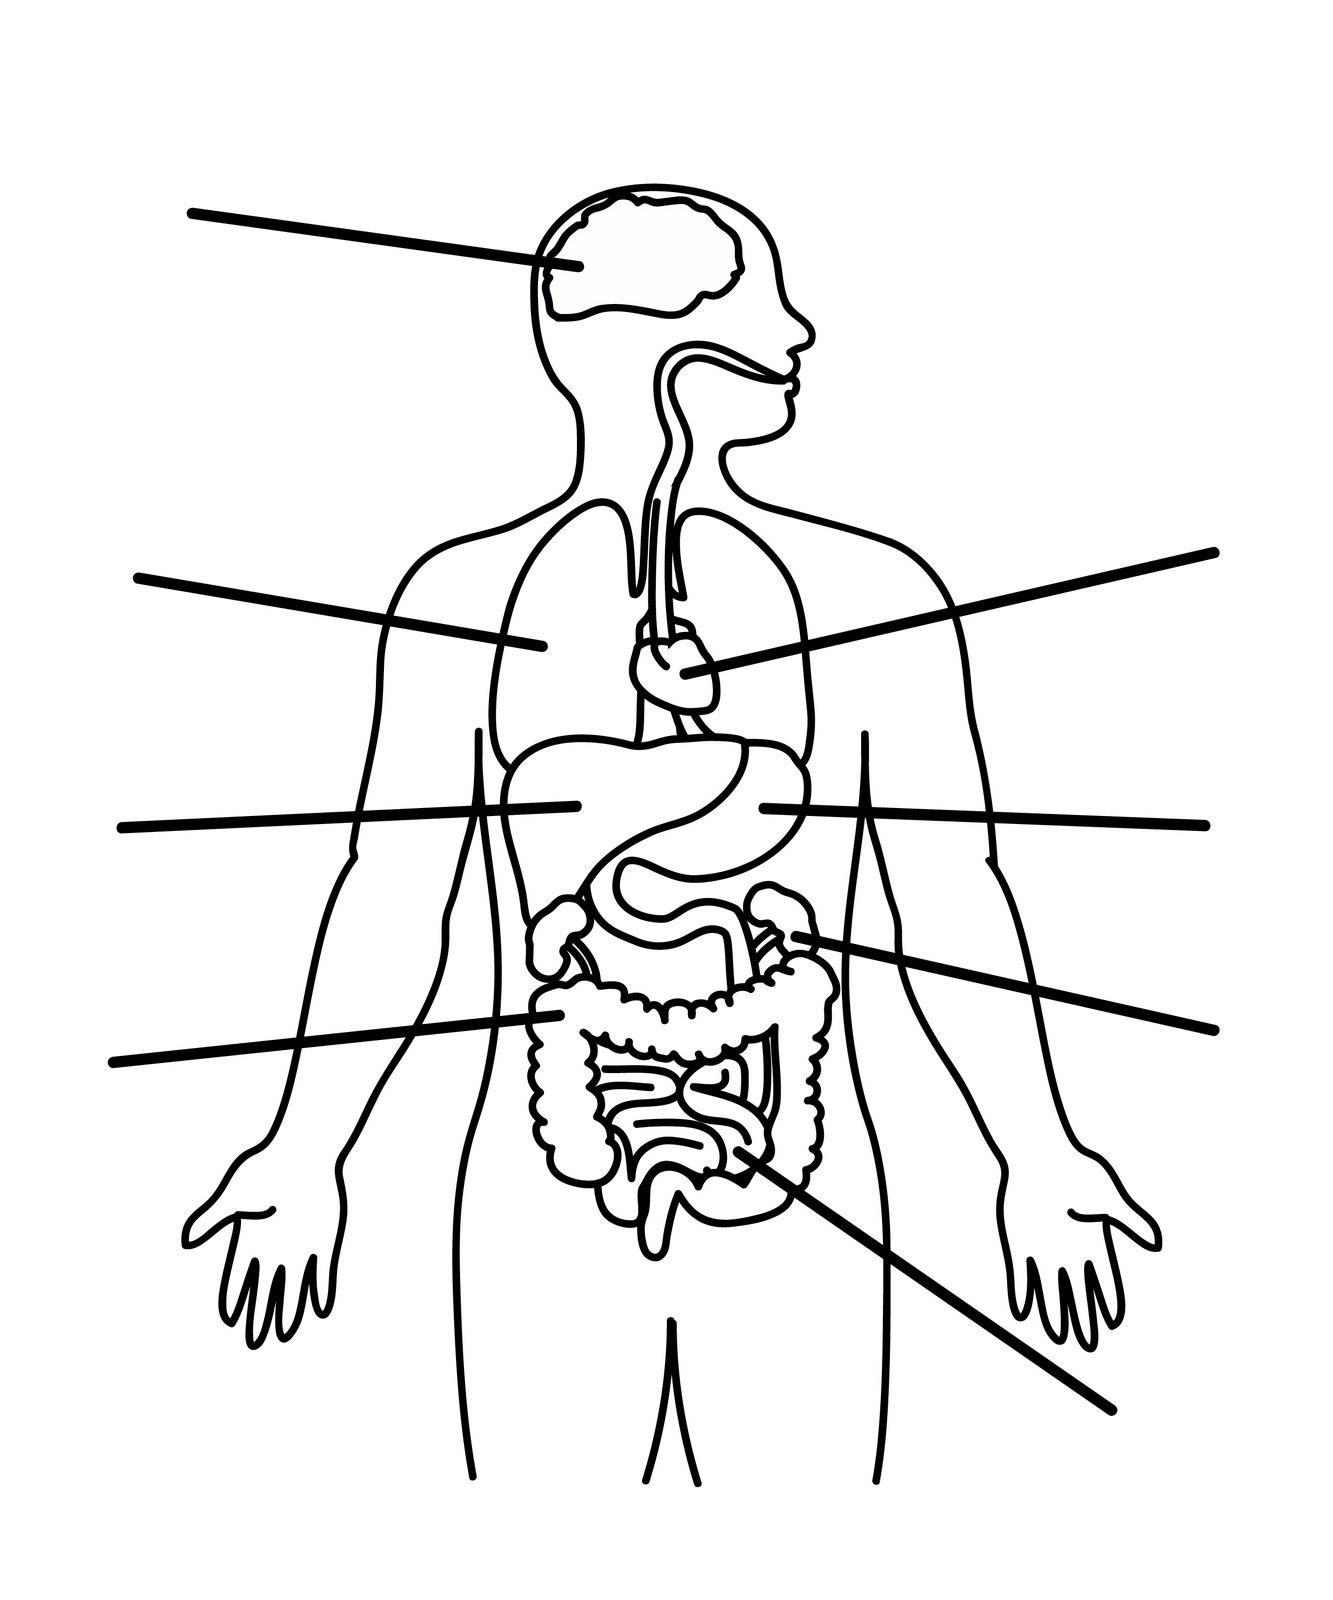 Human Body System Diagram Blank Diagram Of Human Body